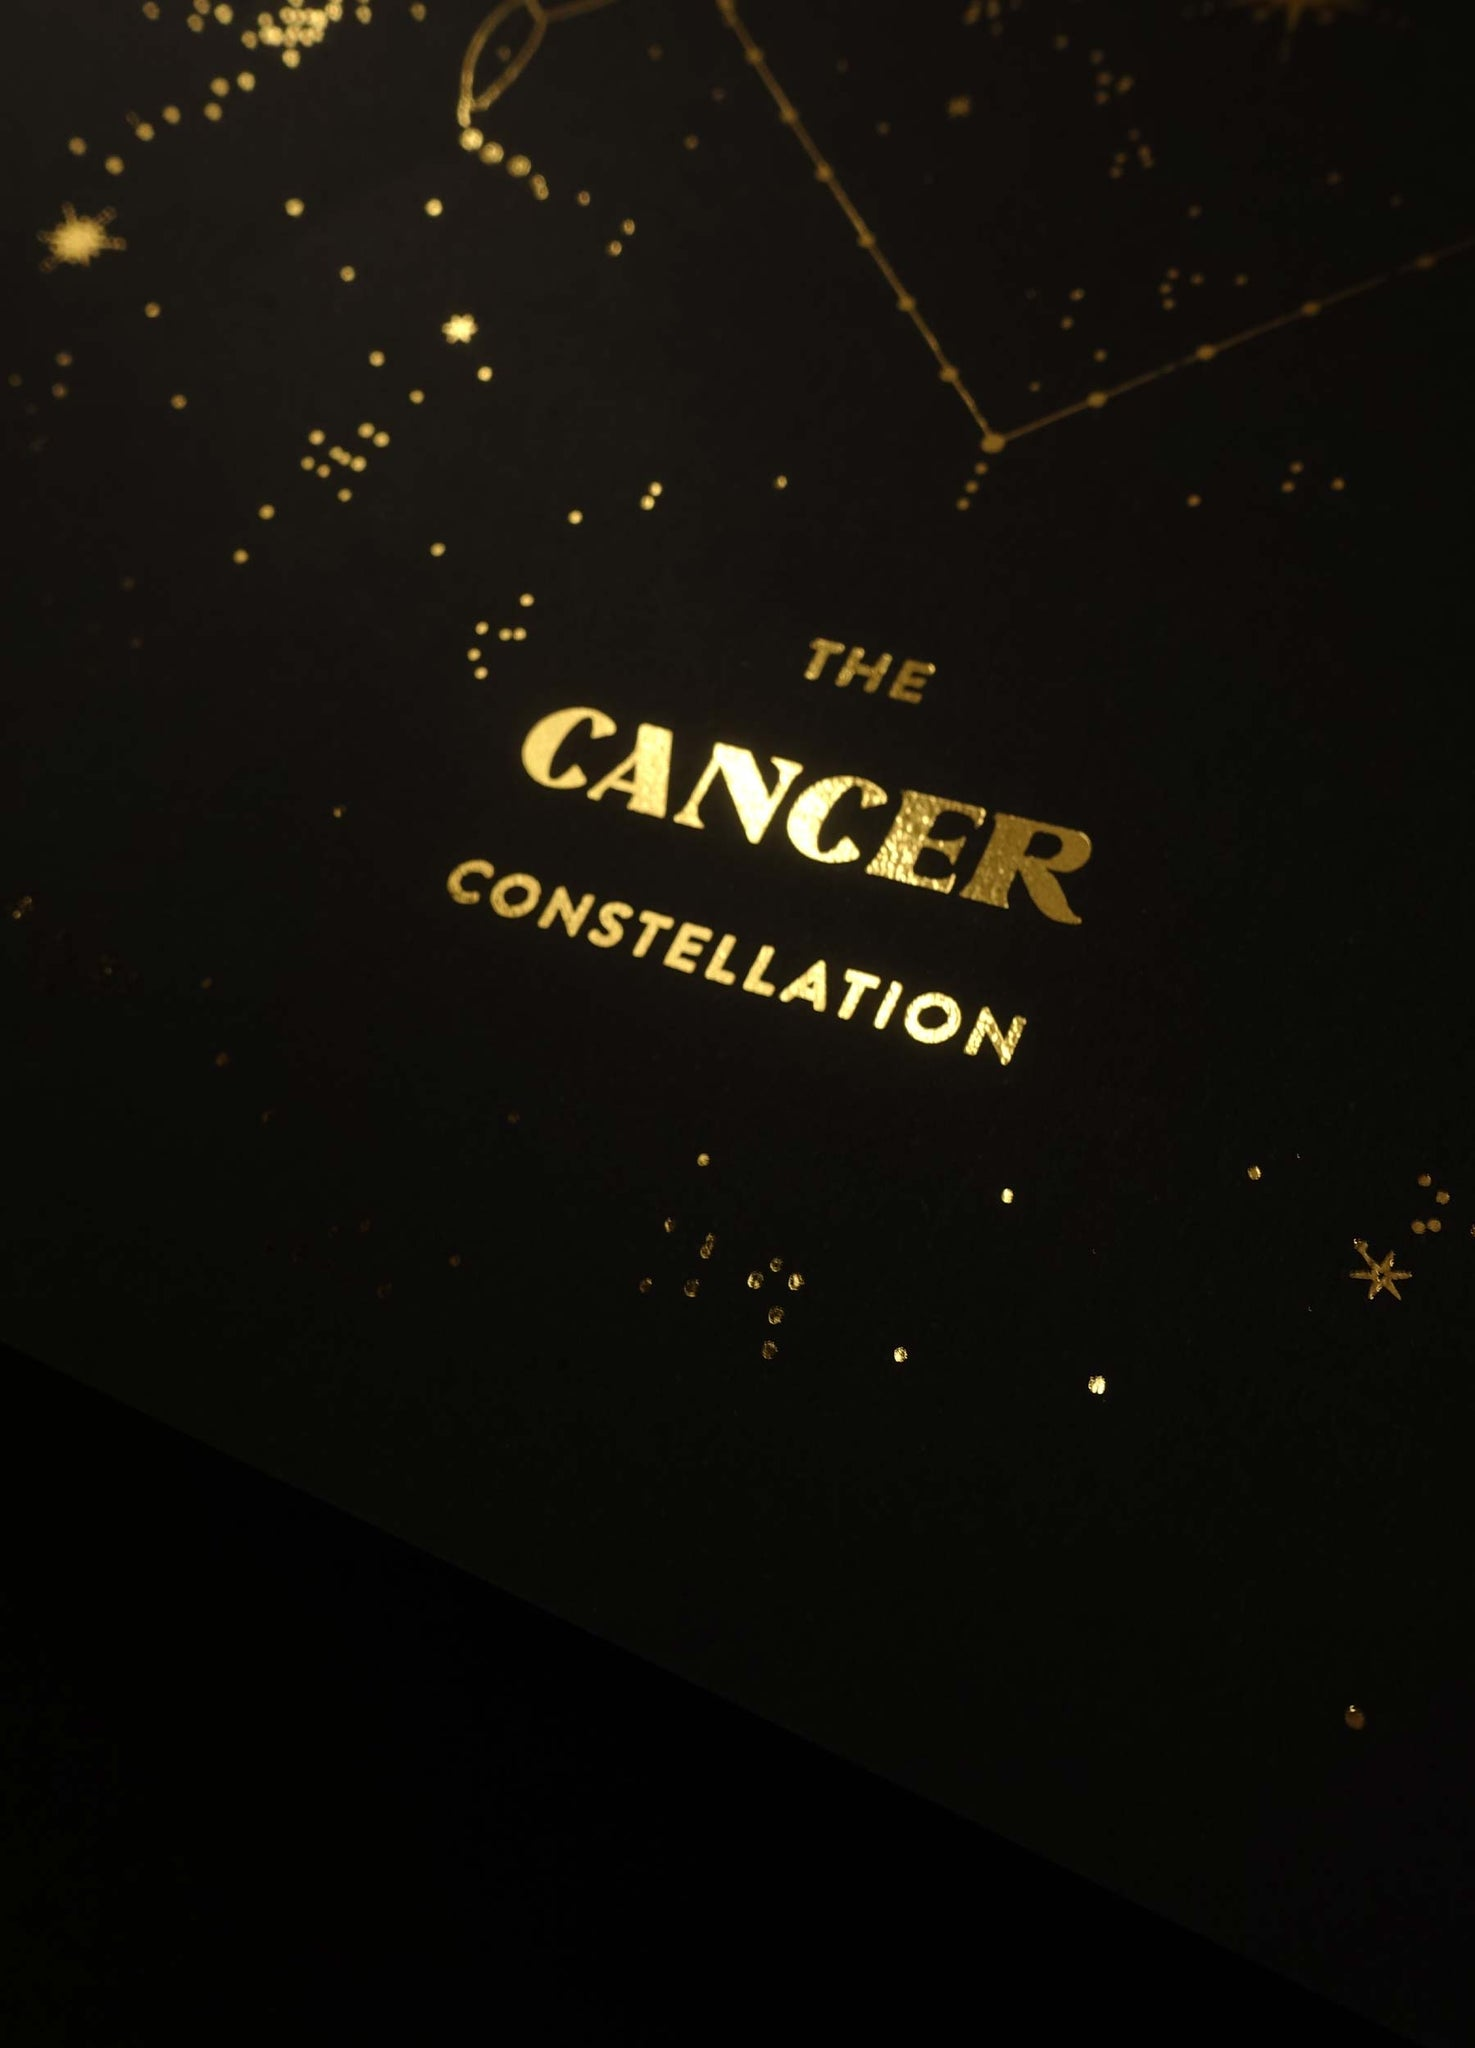 Cancer Constellation gold foil art print on black paper by Cocorrina & design studio and shop